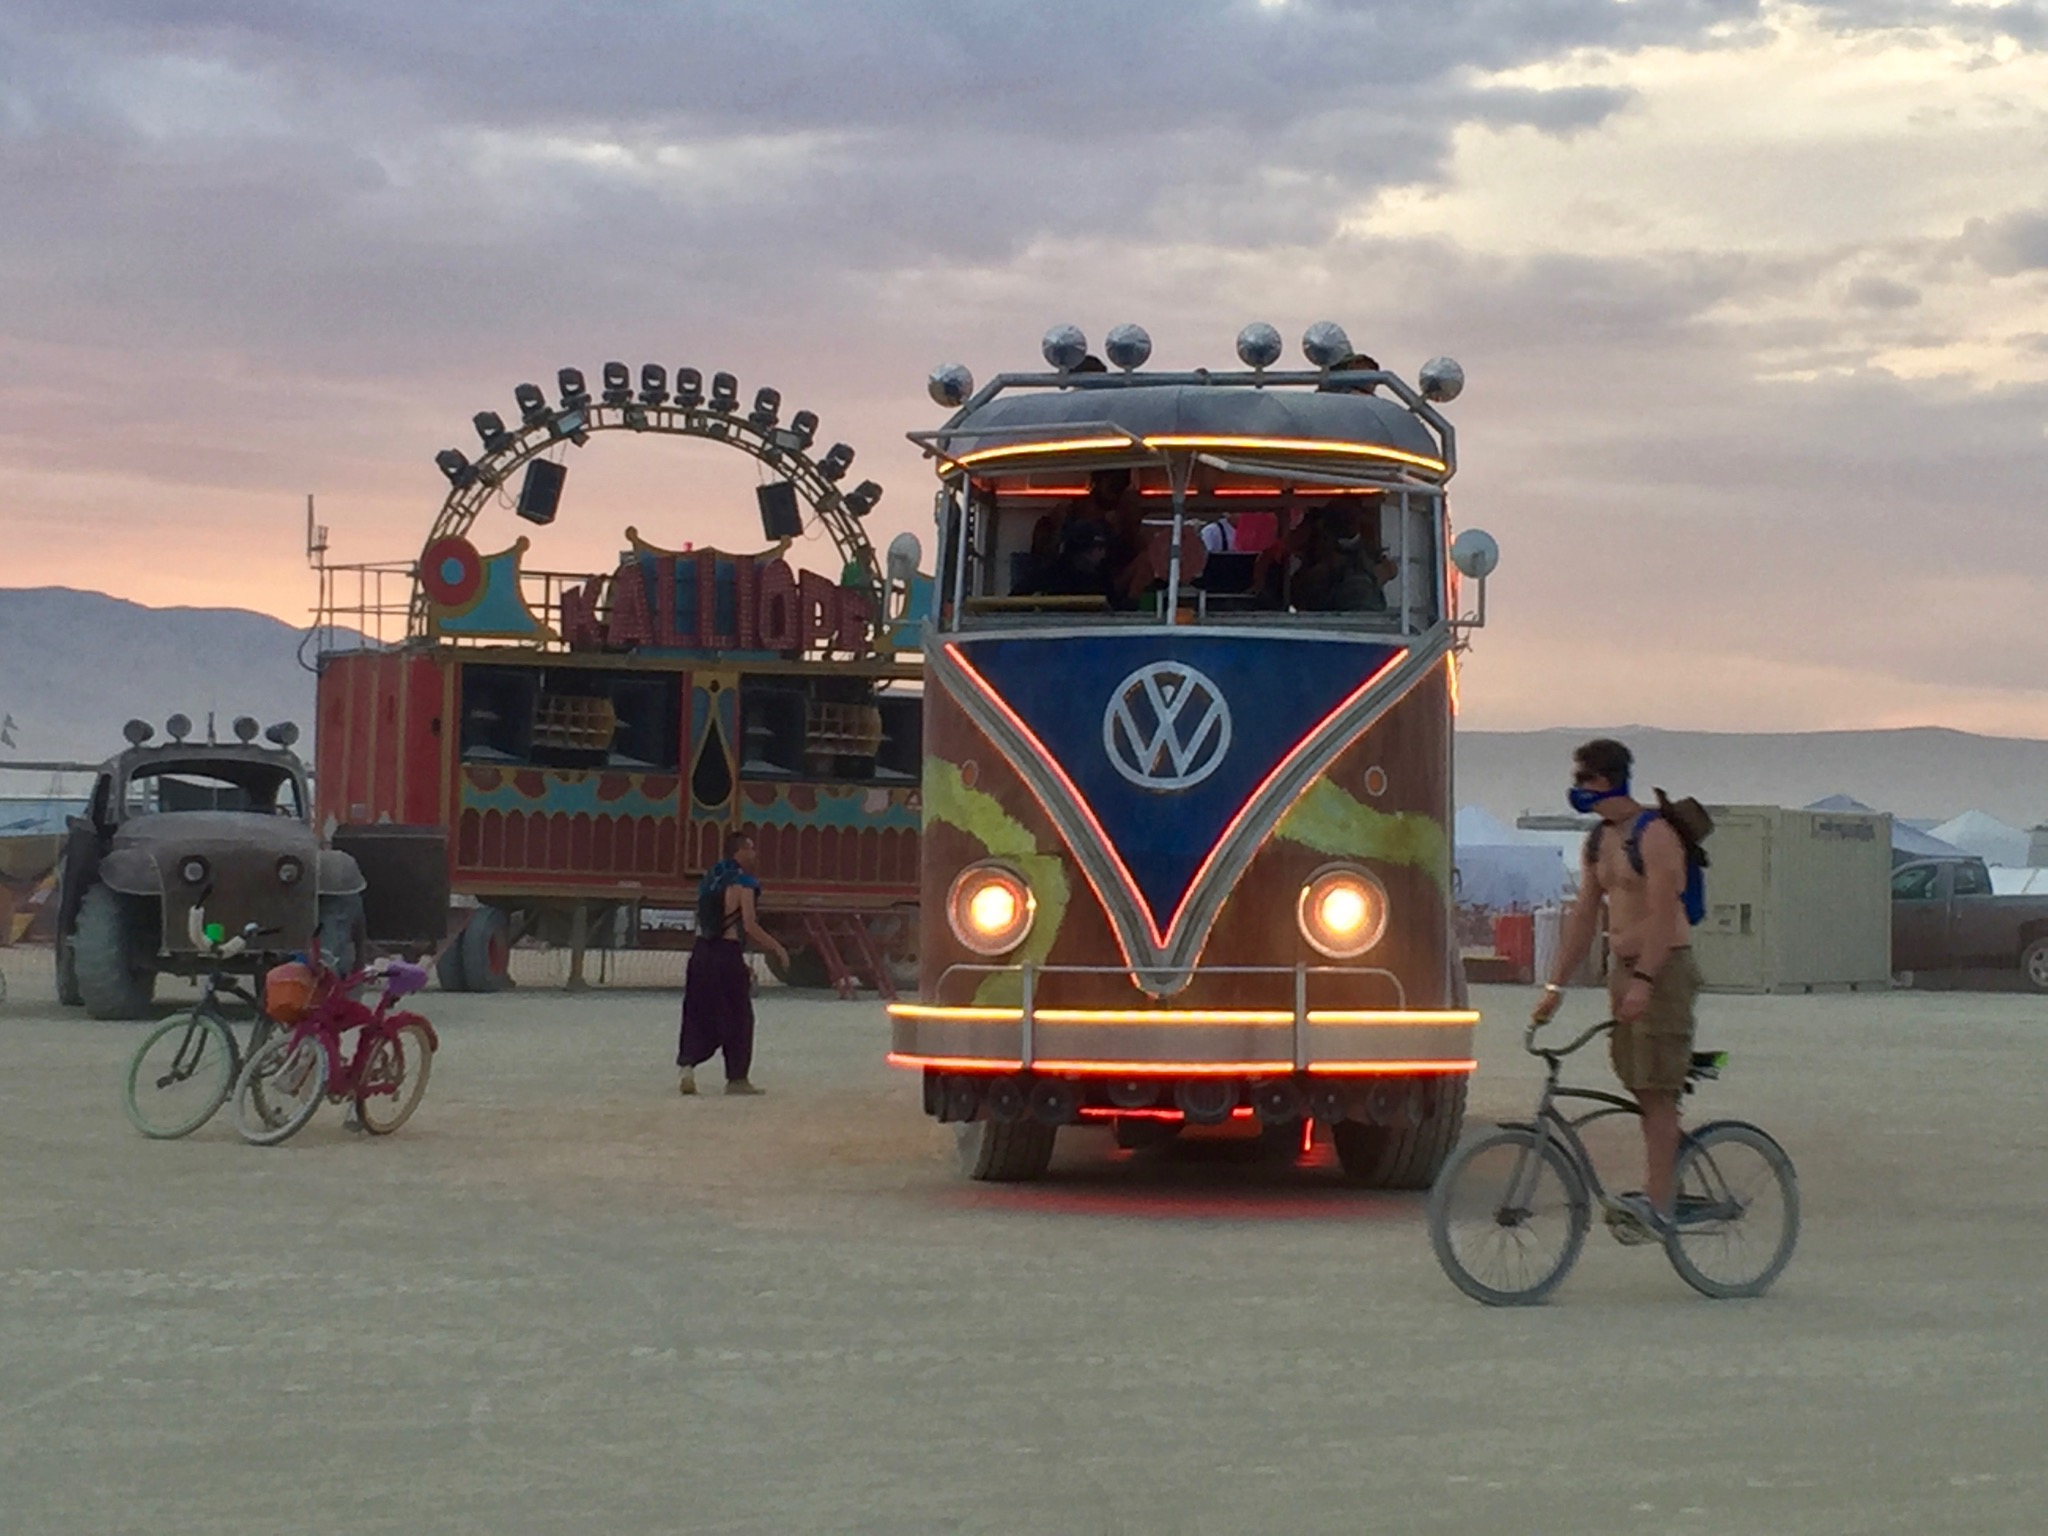 VW Mutant Art Car. Burning Man 2016